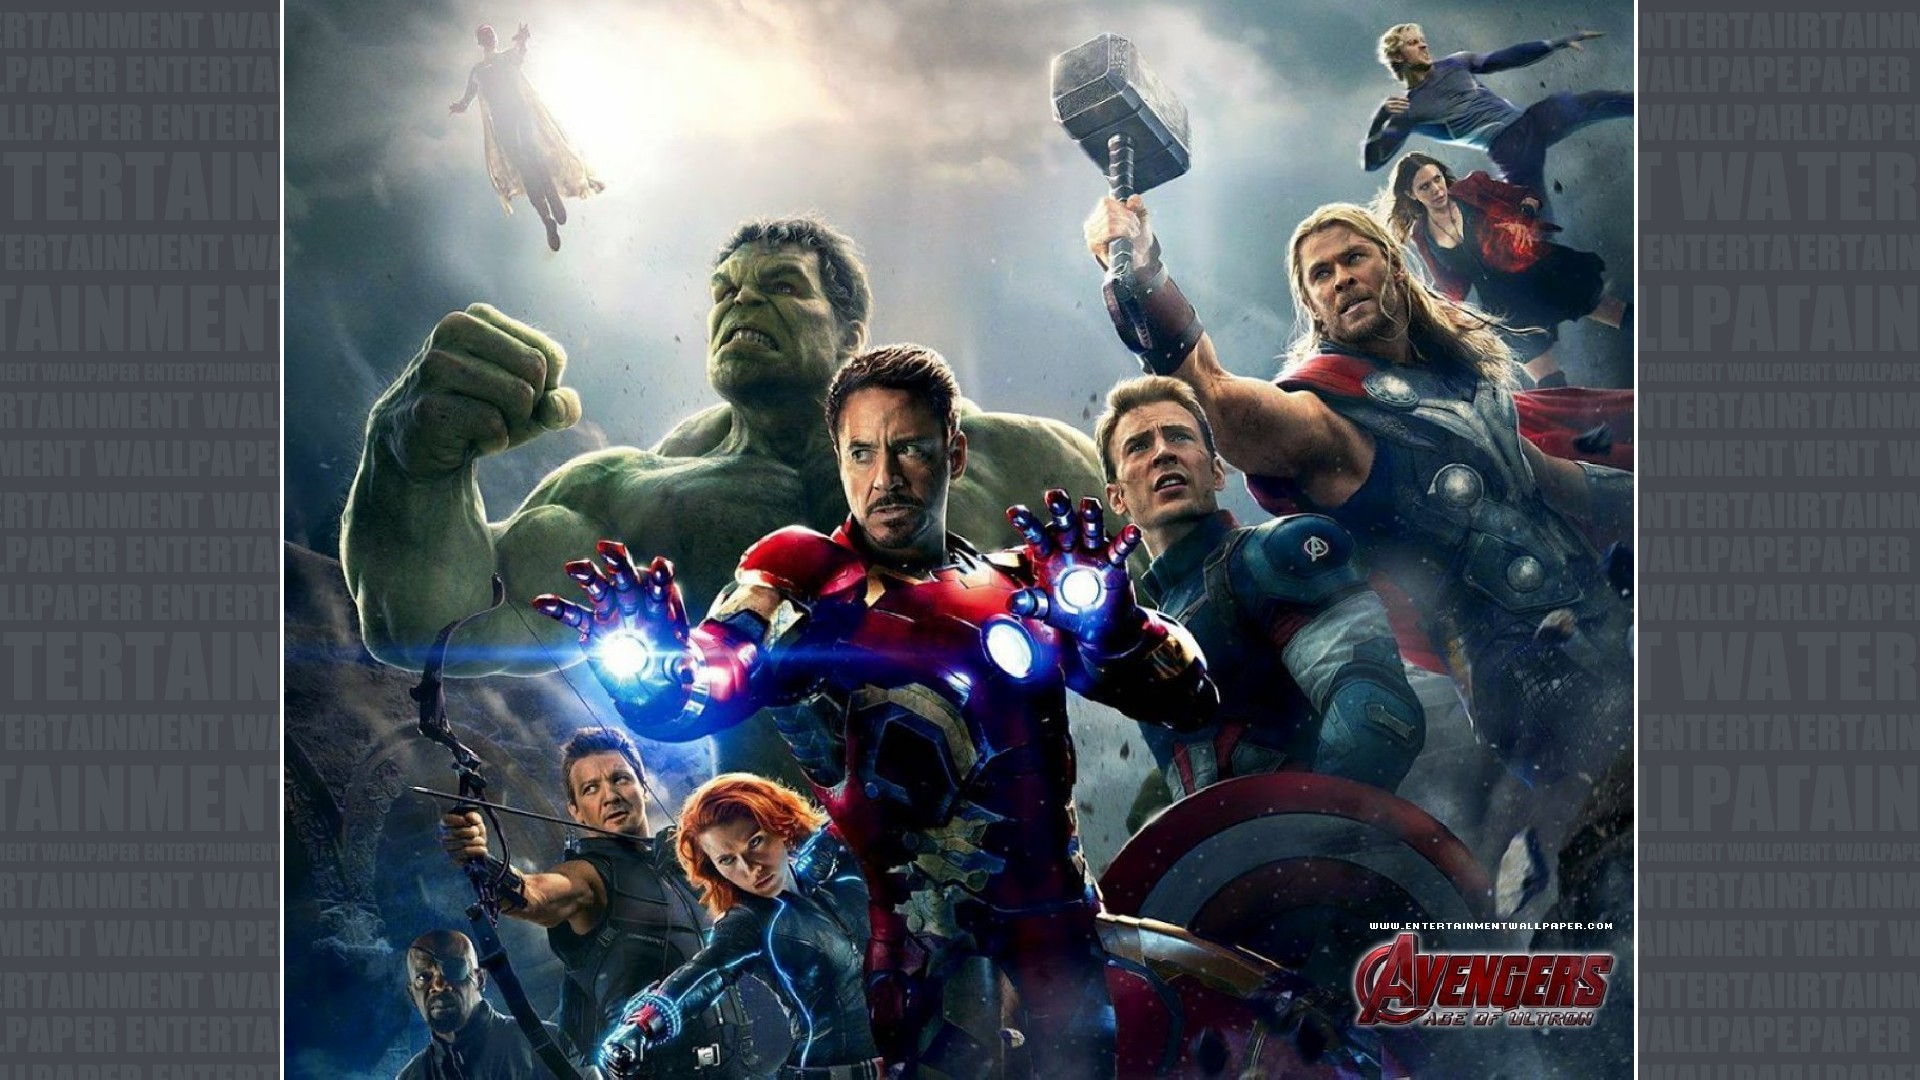 Avengers: Age of Ultron Wallpaper – Original size, download now.